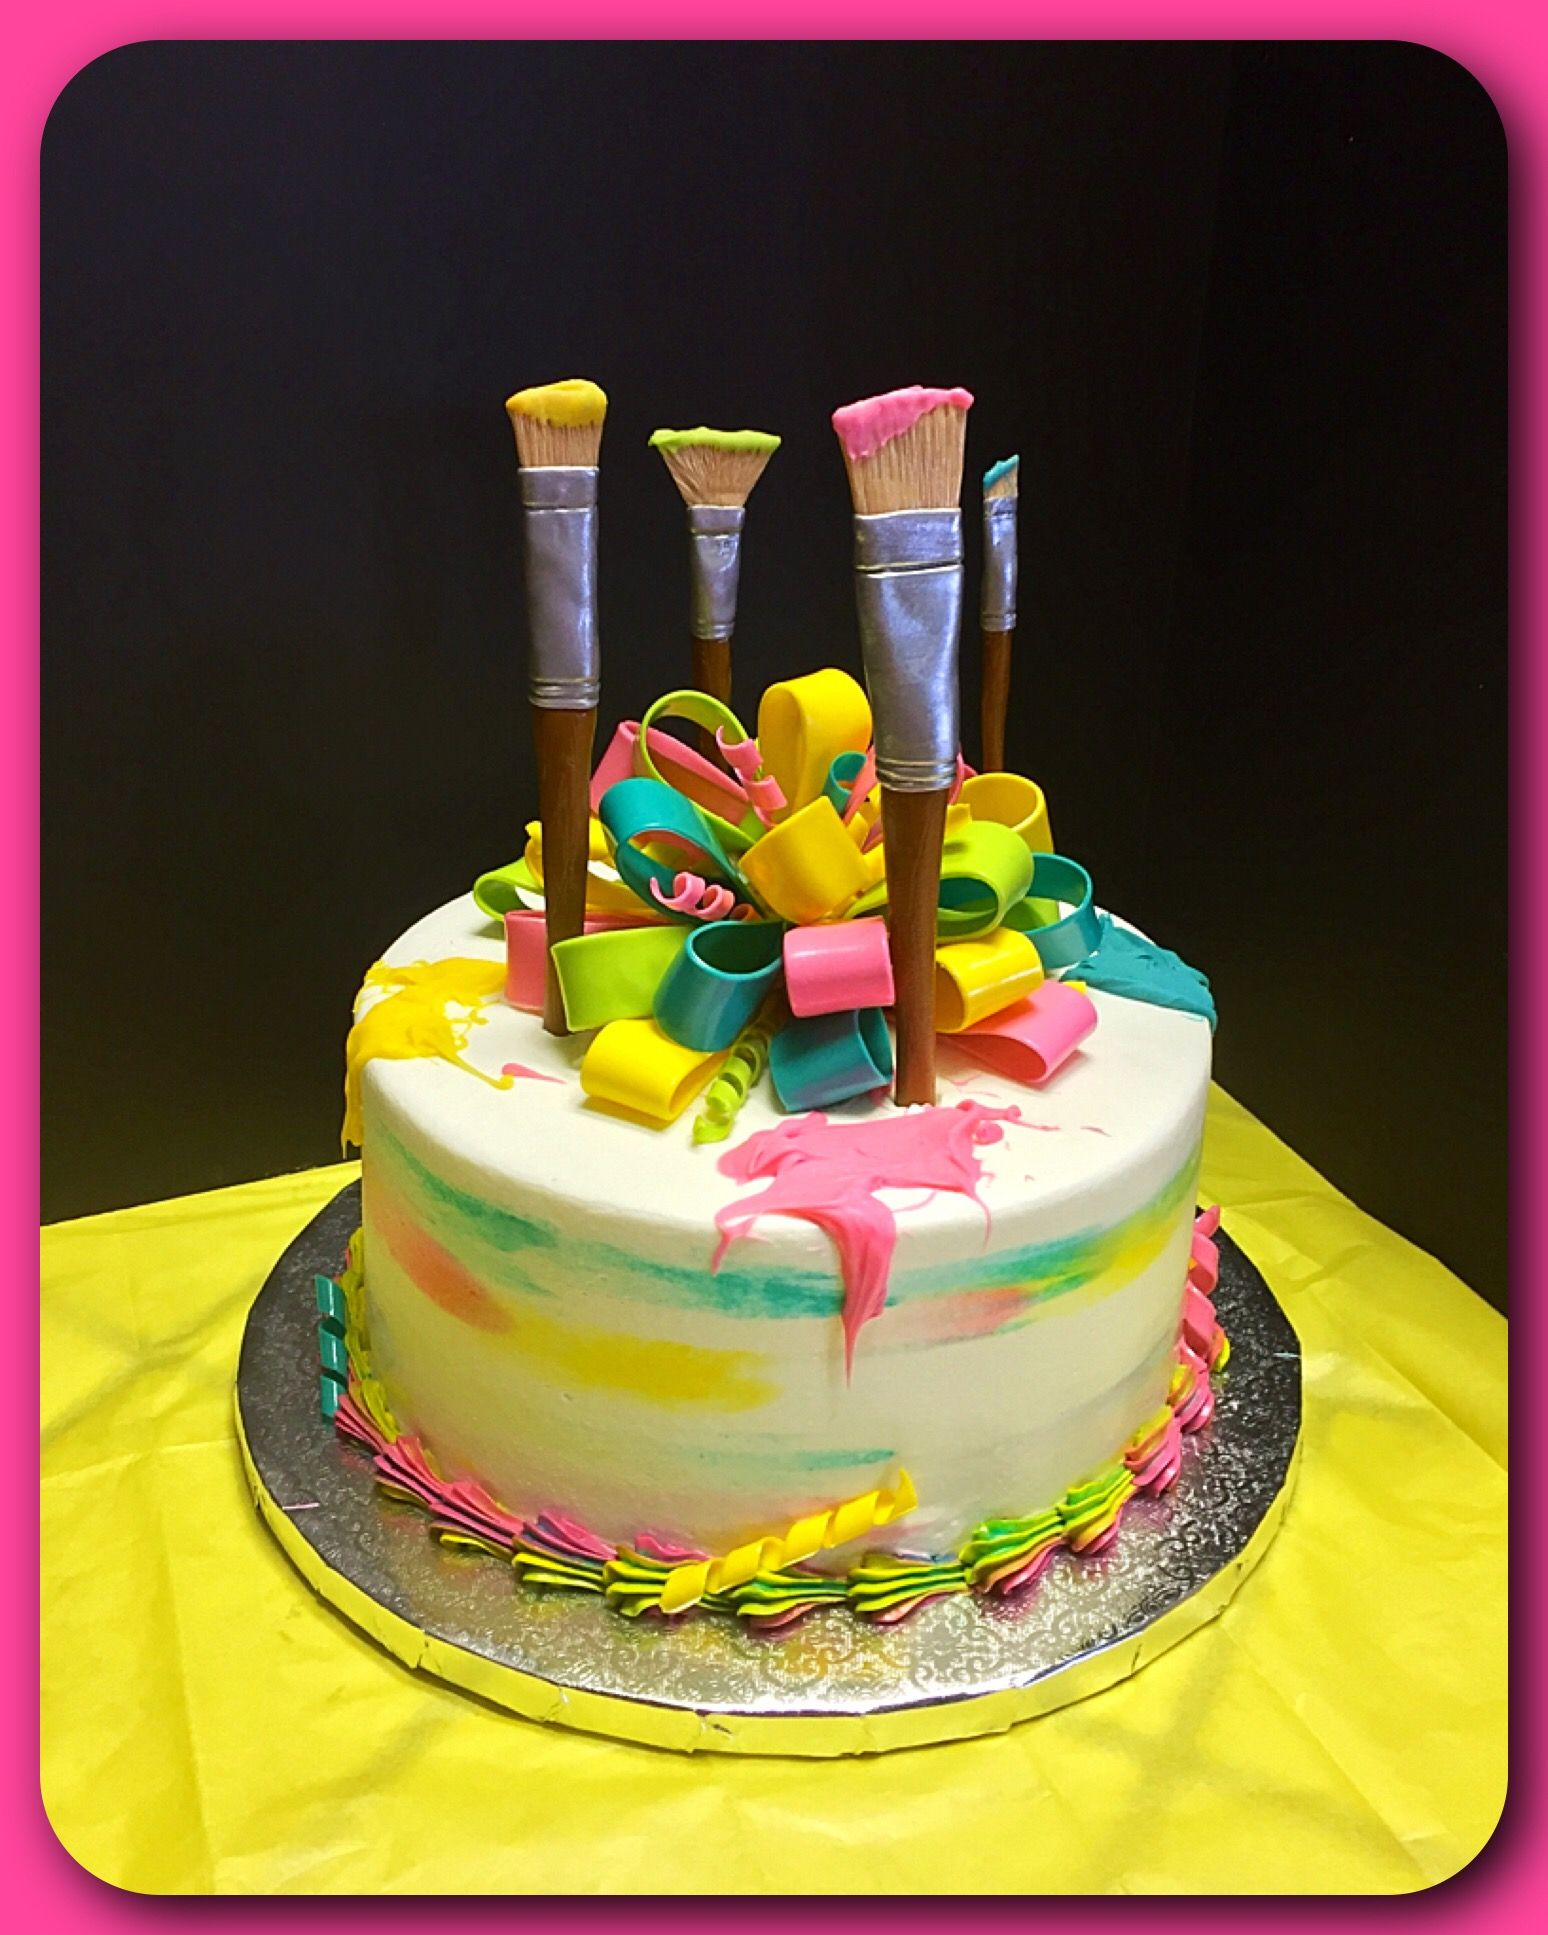 An Artist Themed Cake Complete With Fondant Paint Brushes